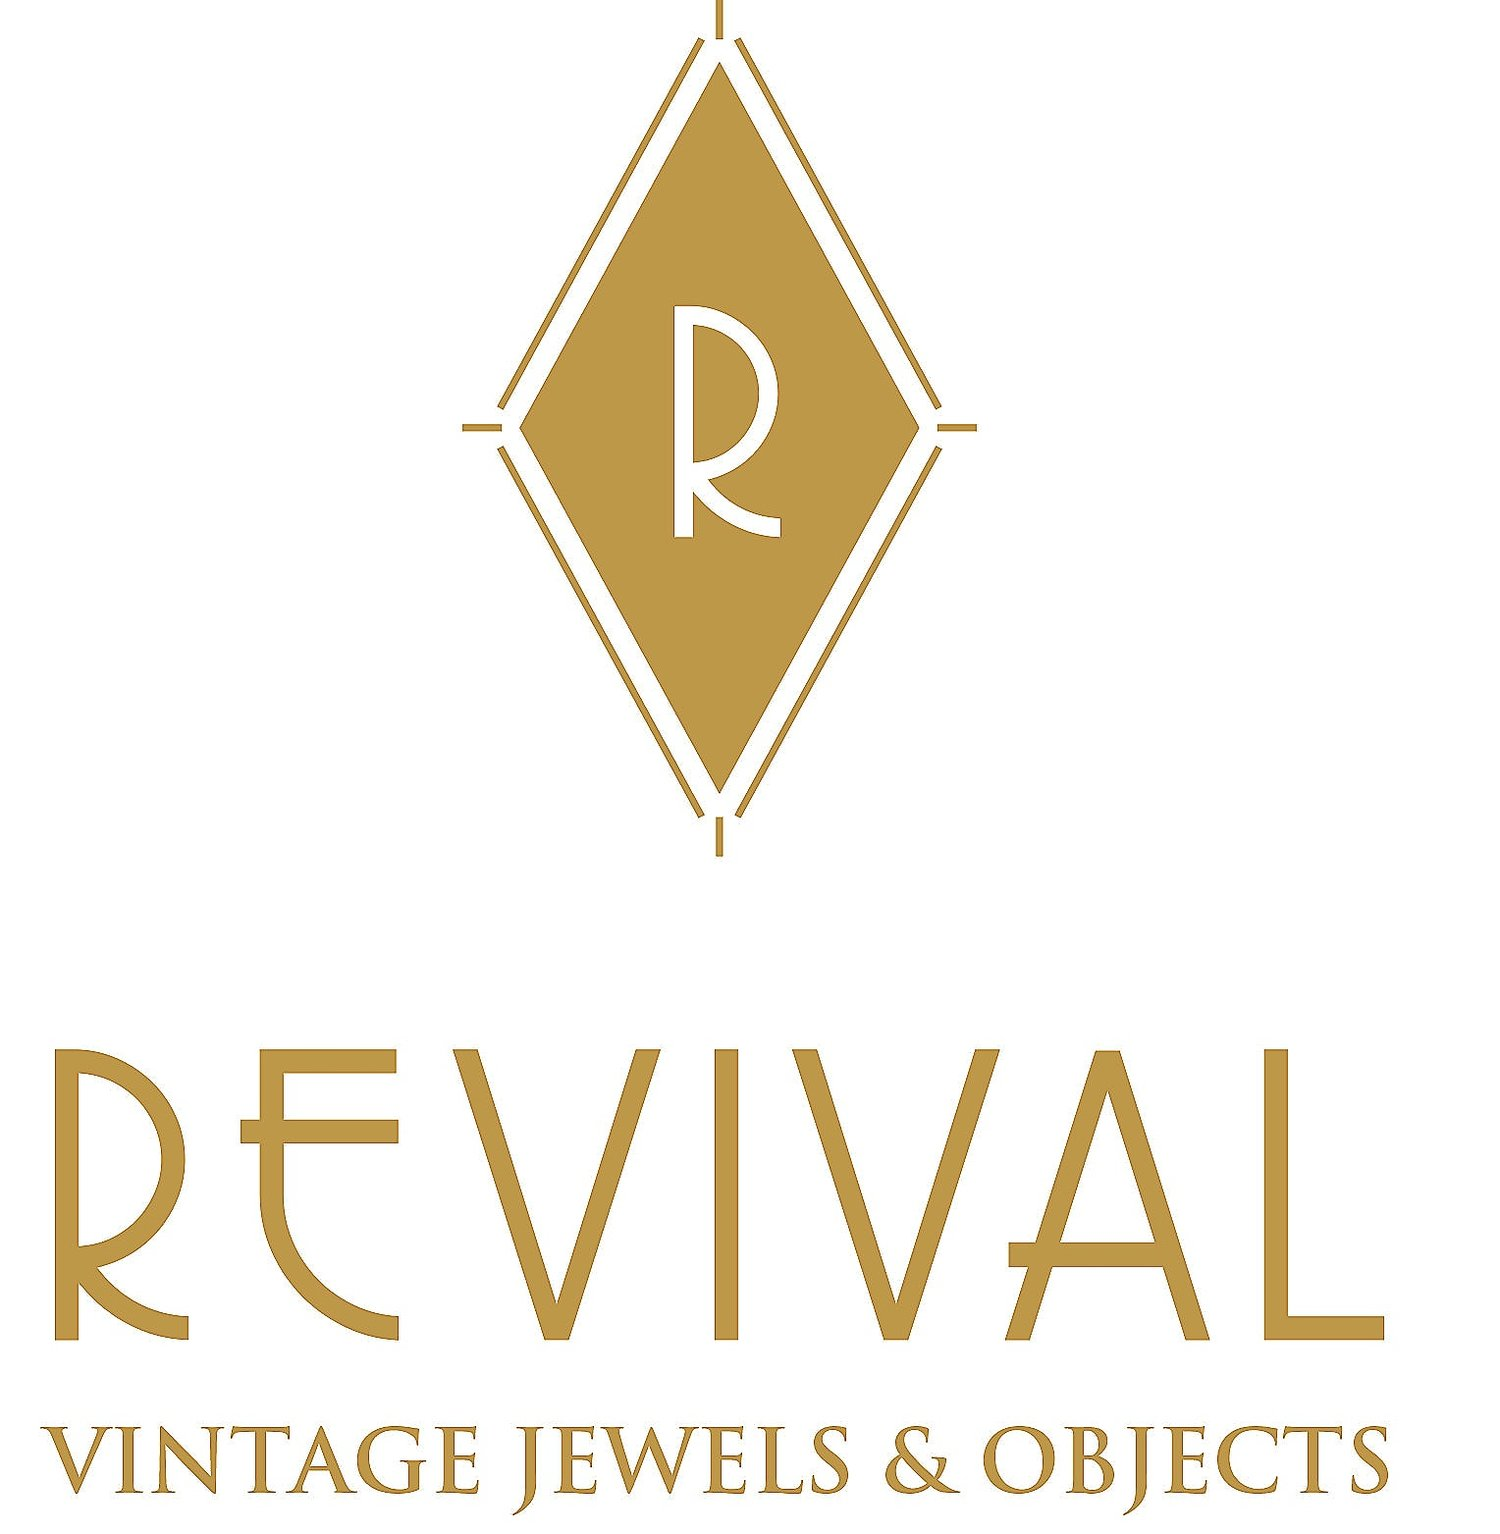 Revival Jewels